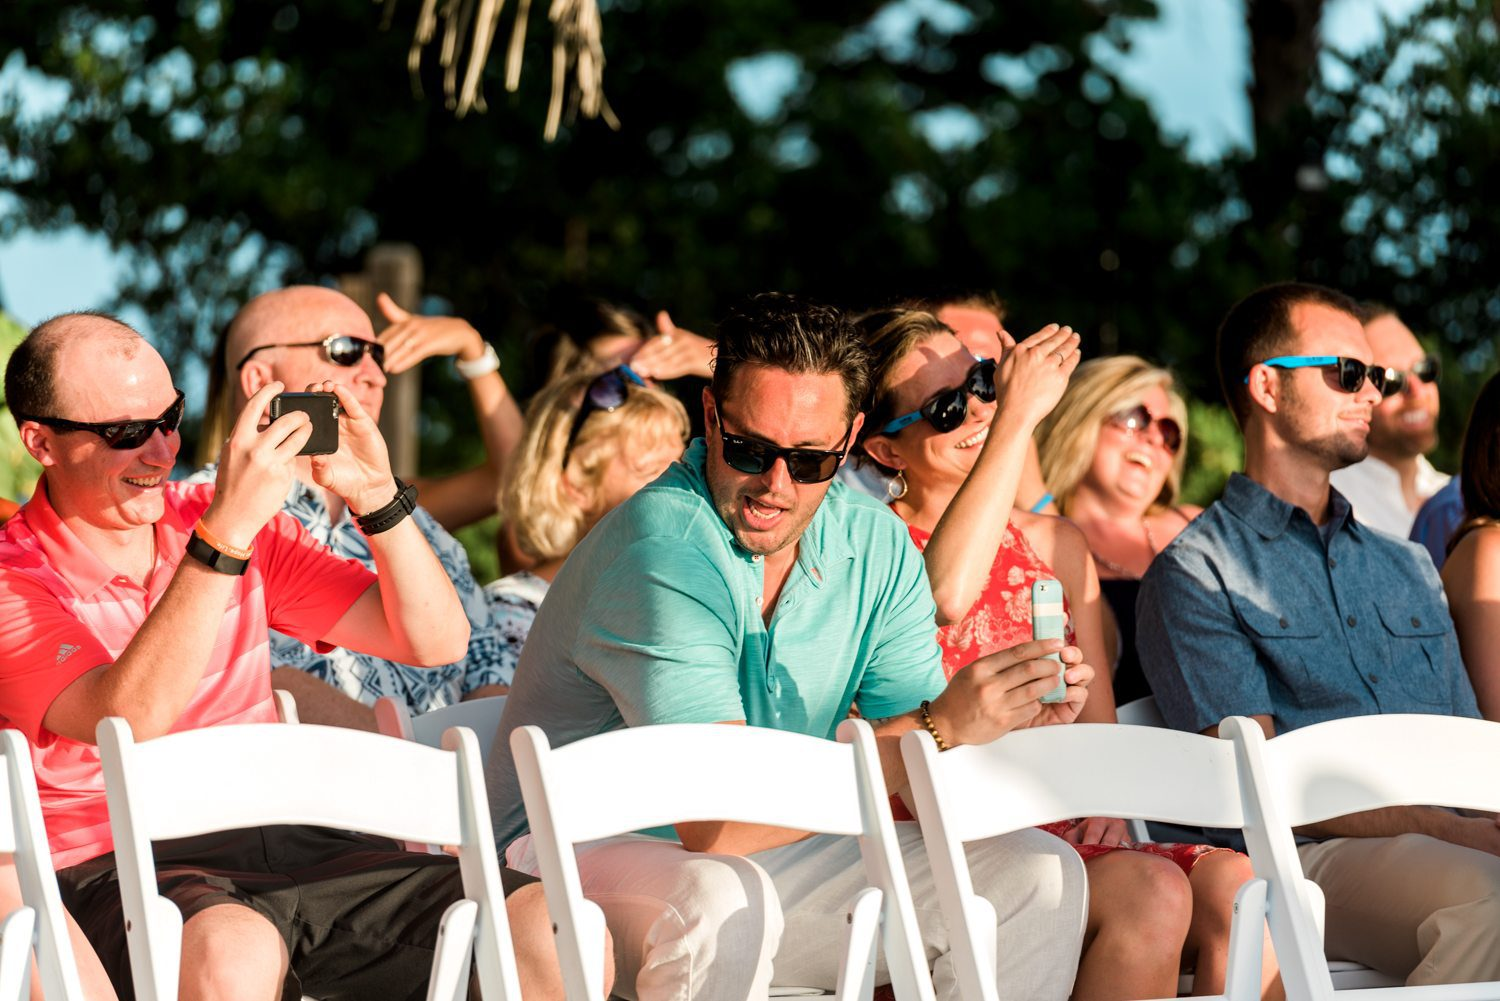 Erin Colin Fort Zachary Taylor Rooftop Cafe Key West Wedding Photographer 41 - Erin & Colin   Key West Wedding Photographer   Fort Zachary Taylor